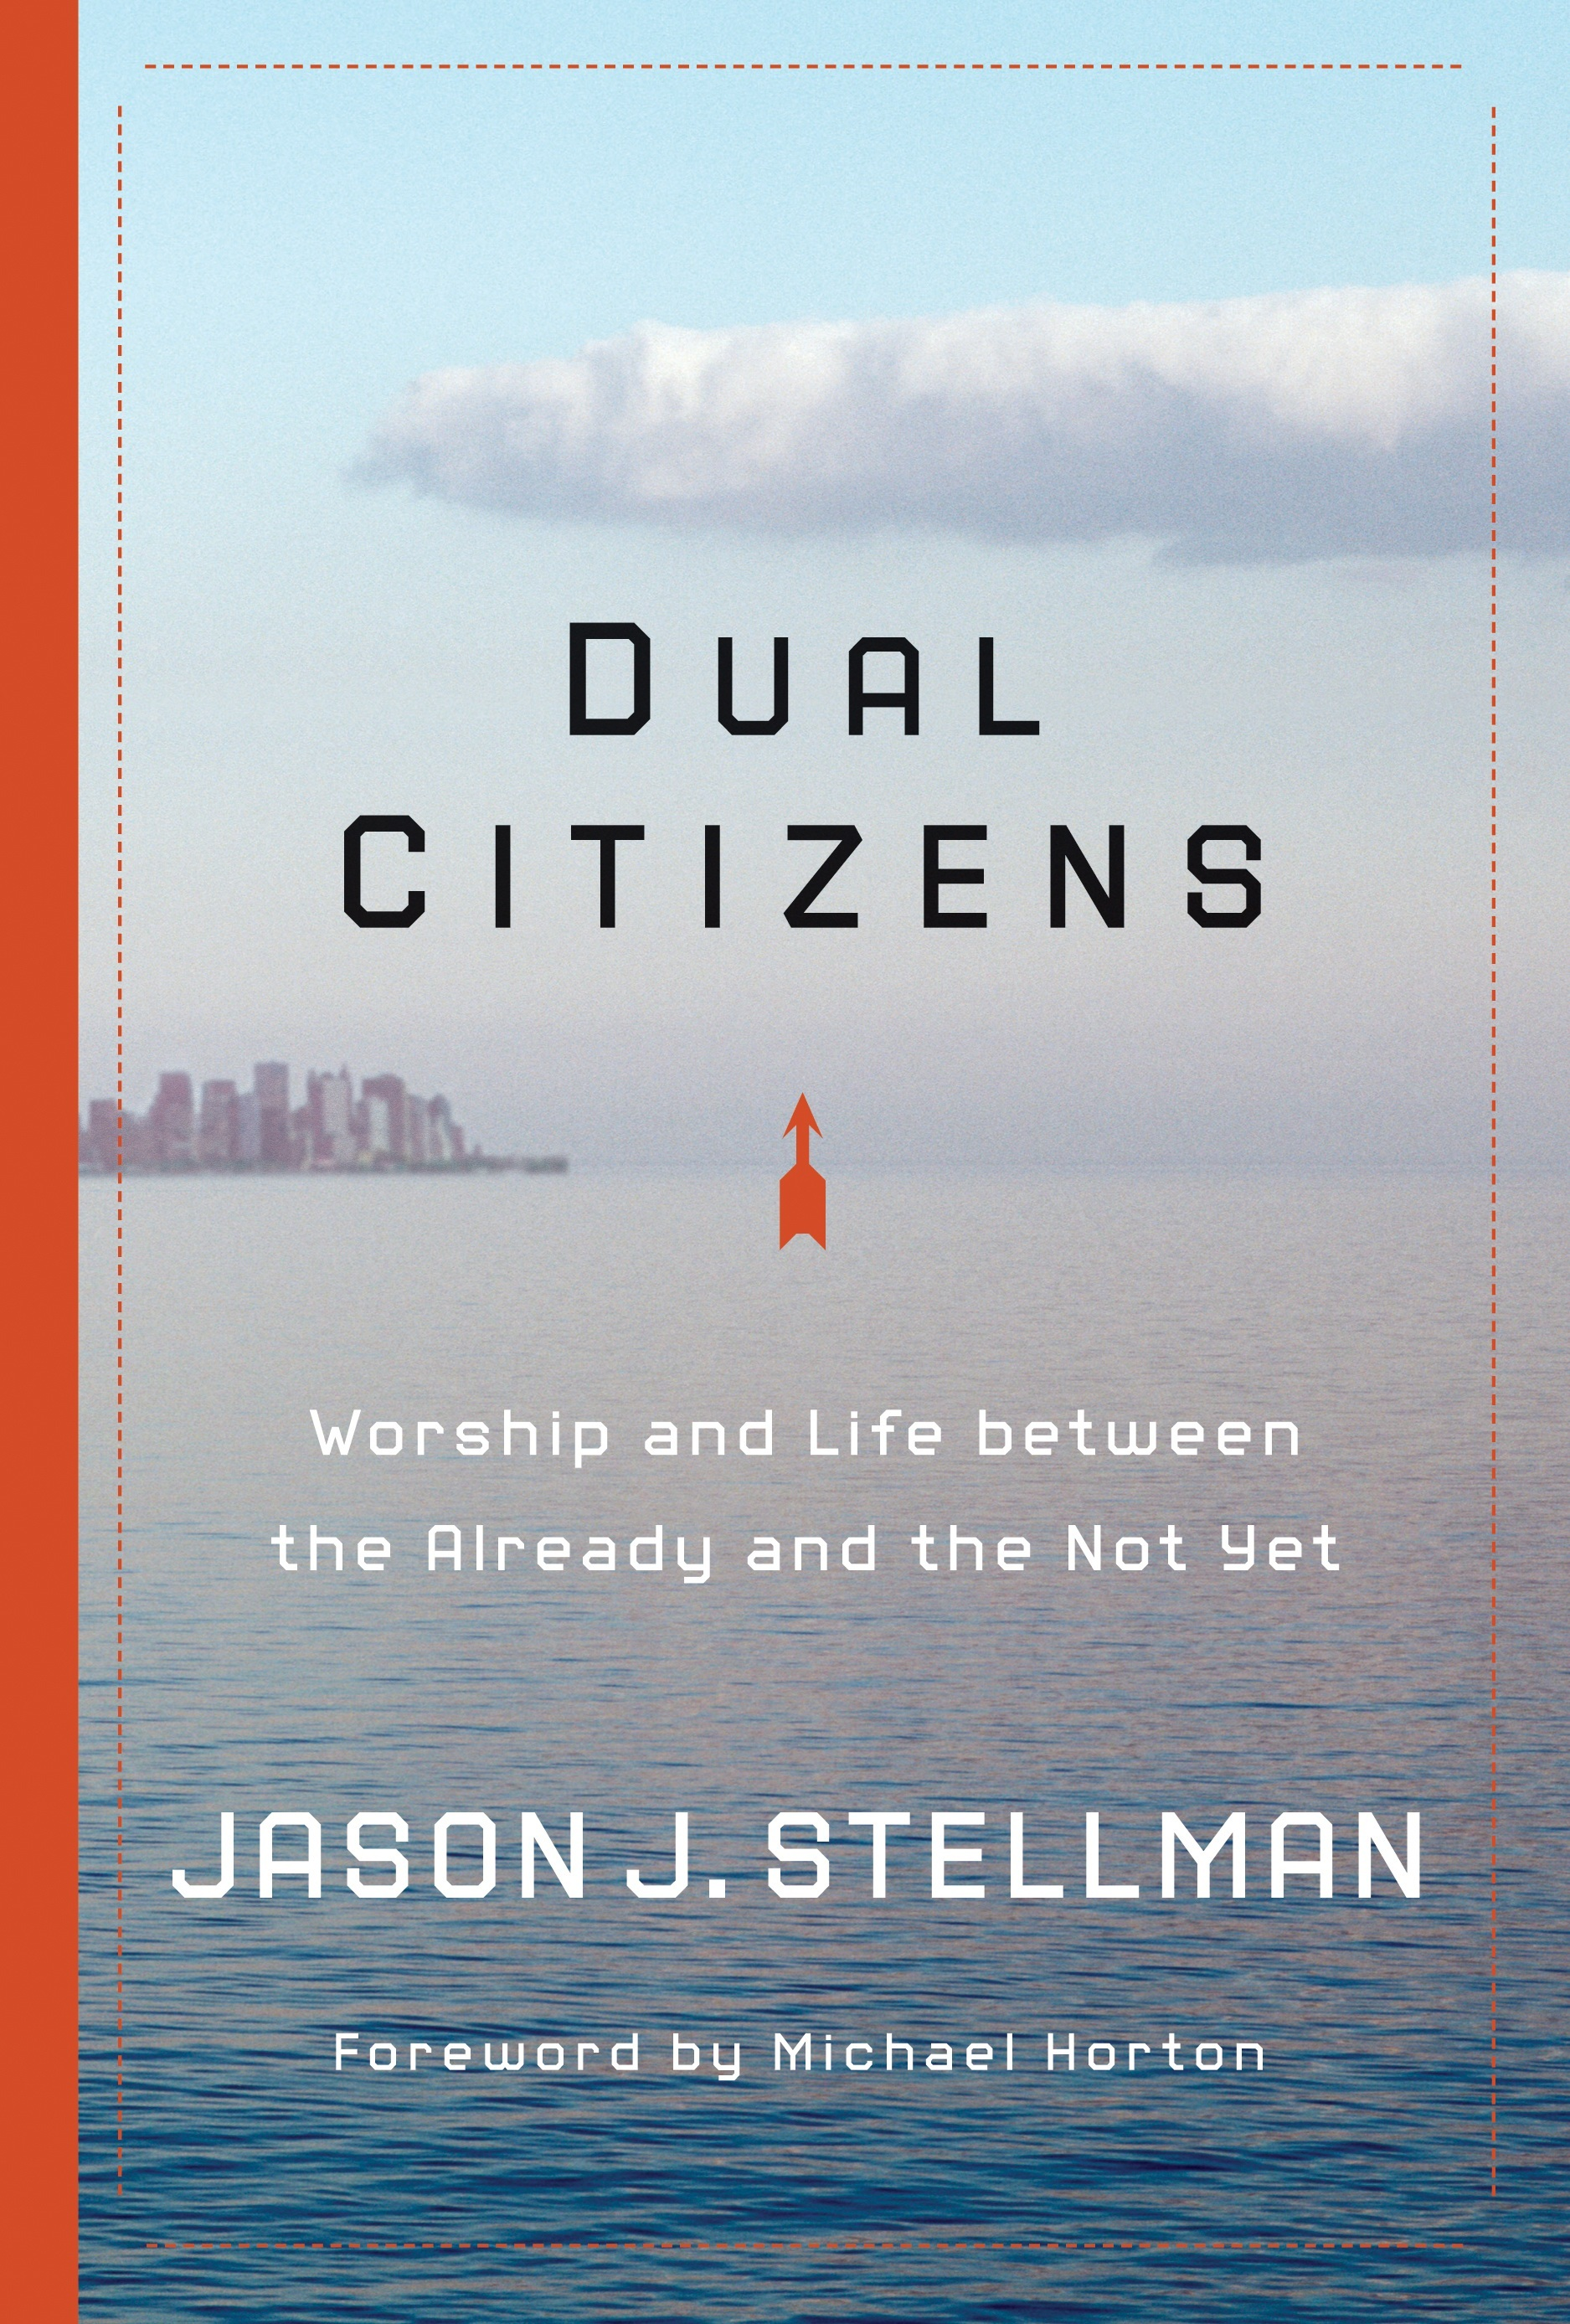 Dual Citizens: Worship and Life between the Already and the Not Yet